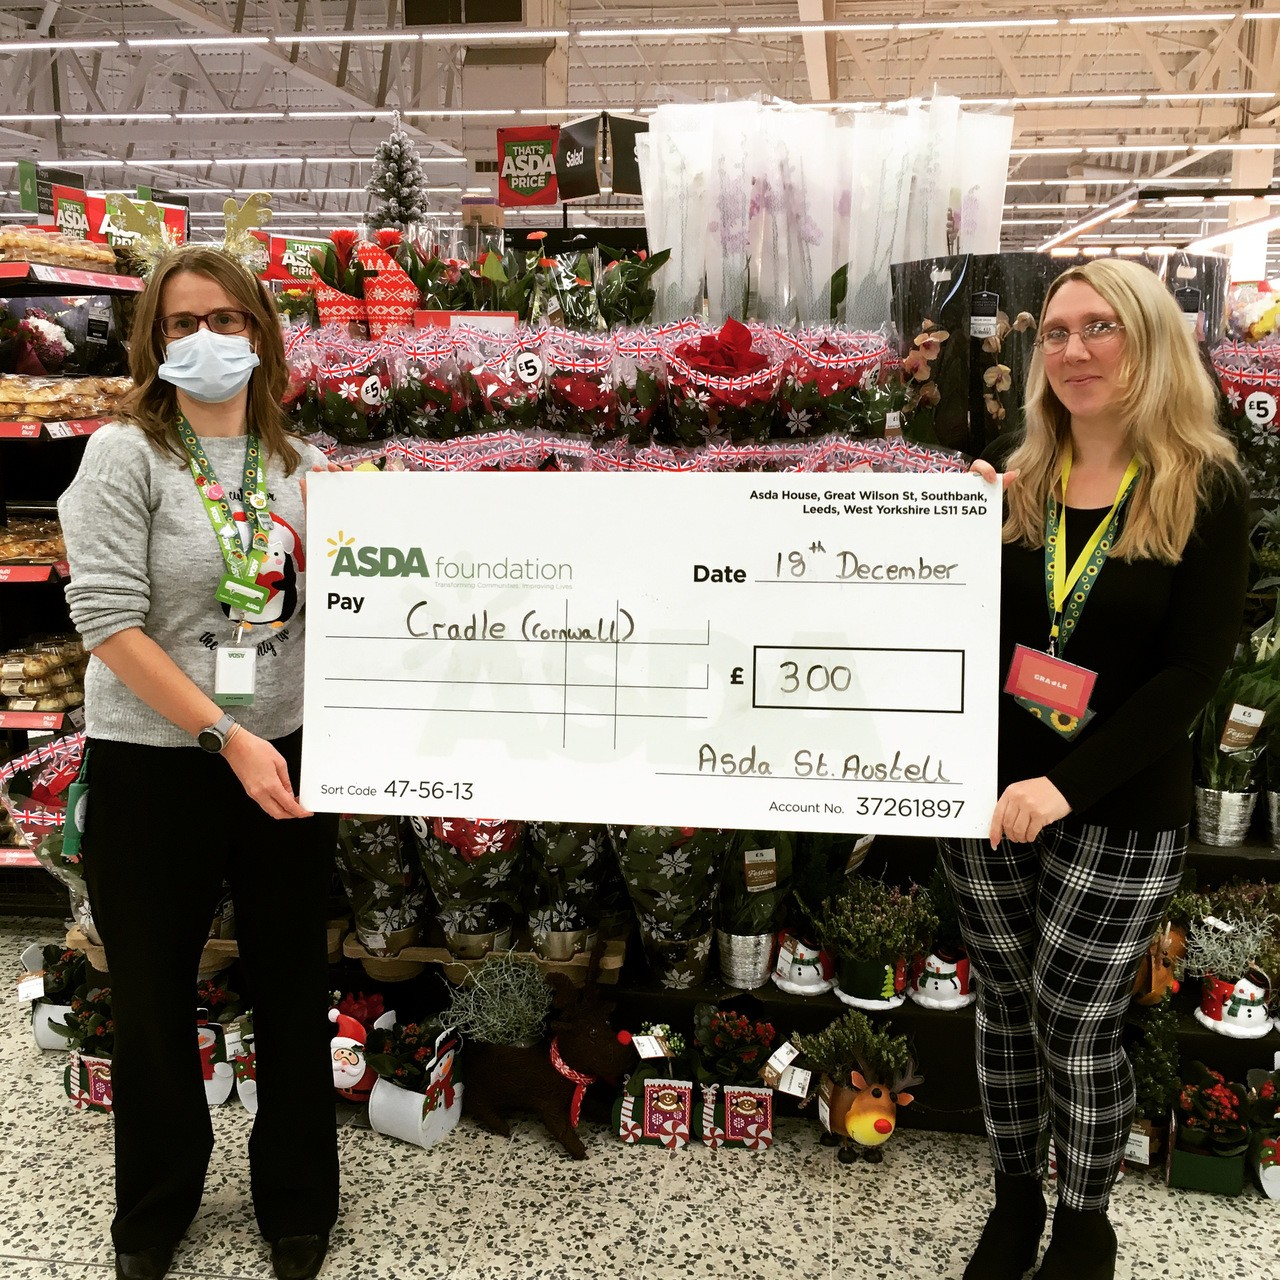 Cradle - Christmas giving donation  | Asda St Austell